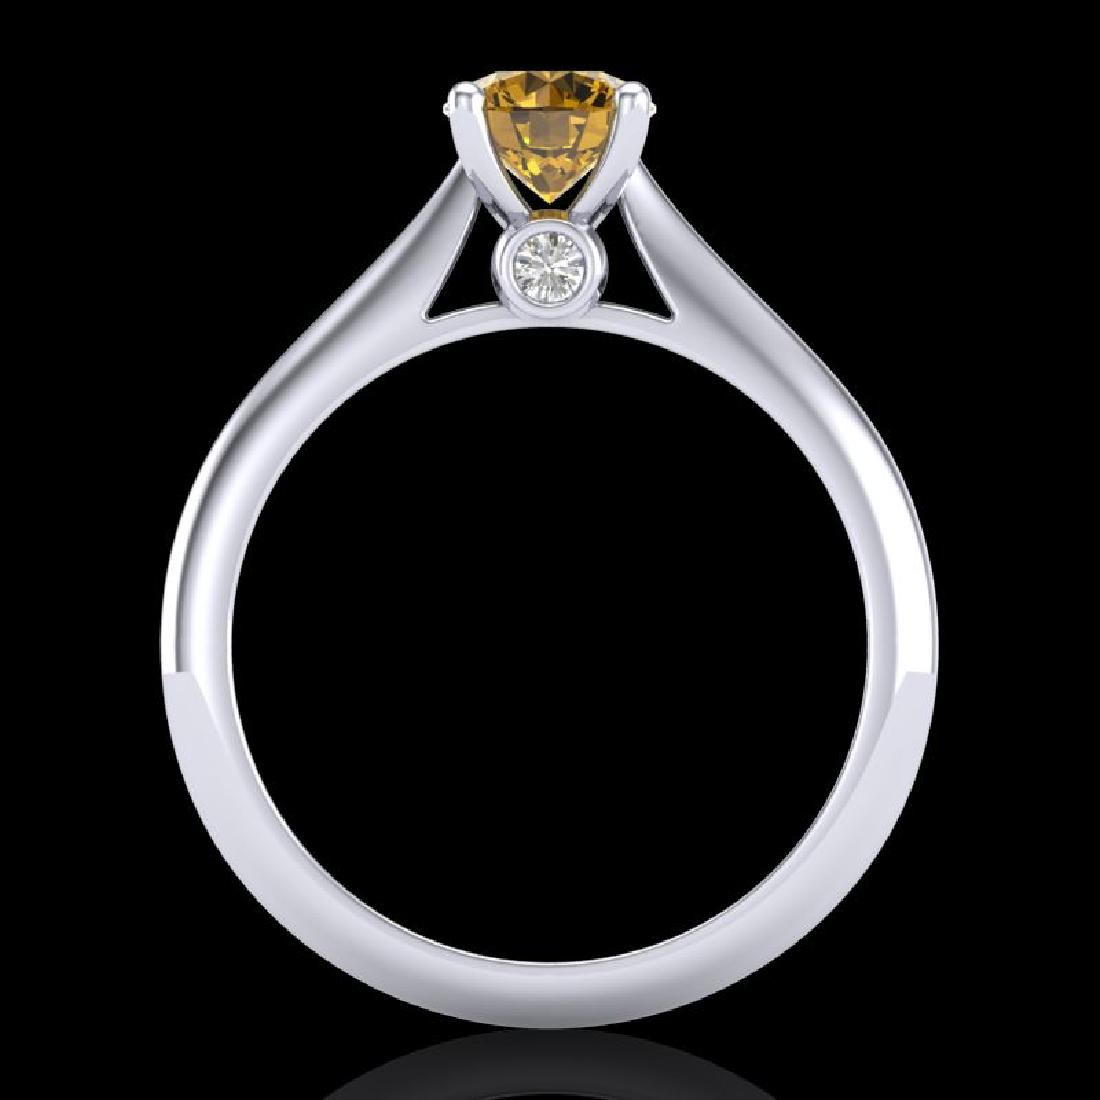 0.83 CTW Intense Fancy Yellow Diamond Engagement Art - 3